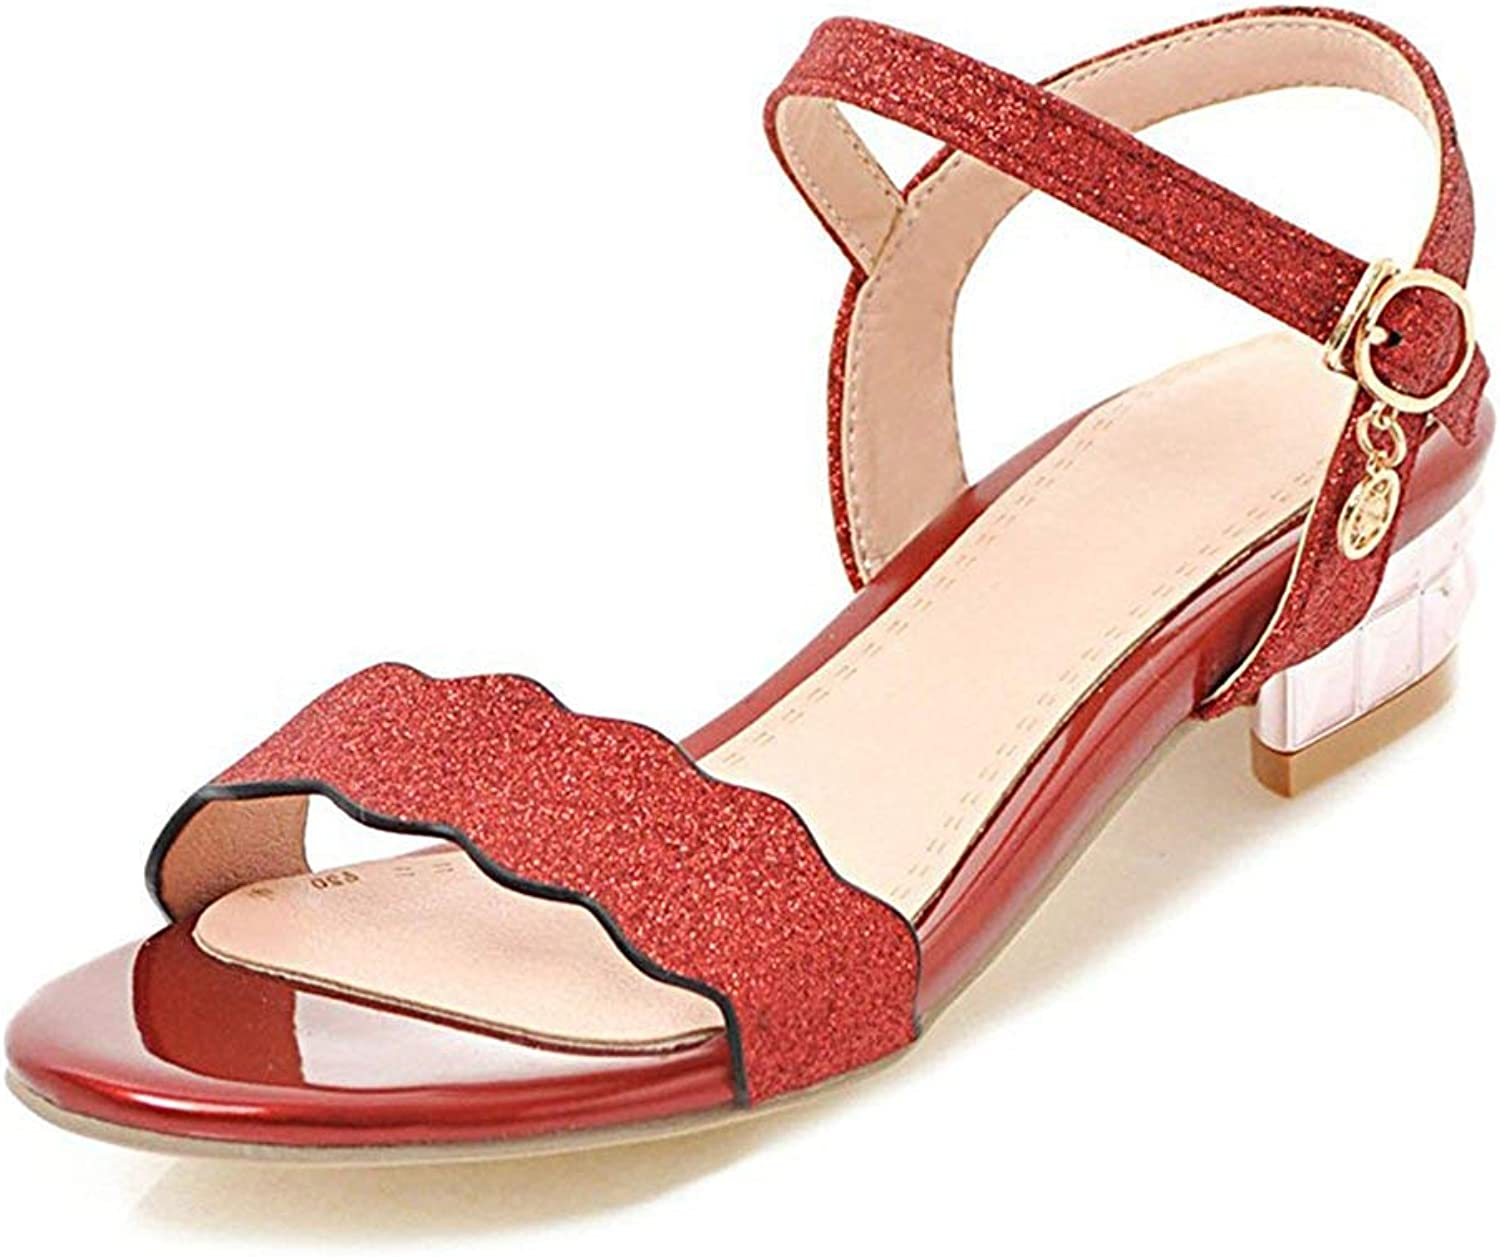 Unm Women's Low Heel Sandals with Ankle Strap - Buckled Chunky Open Toe - Glitter Sequined